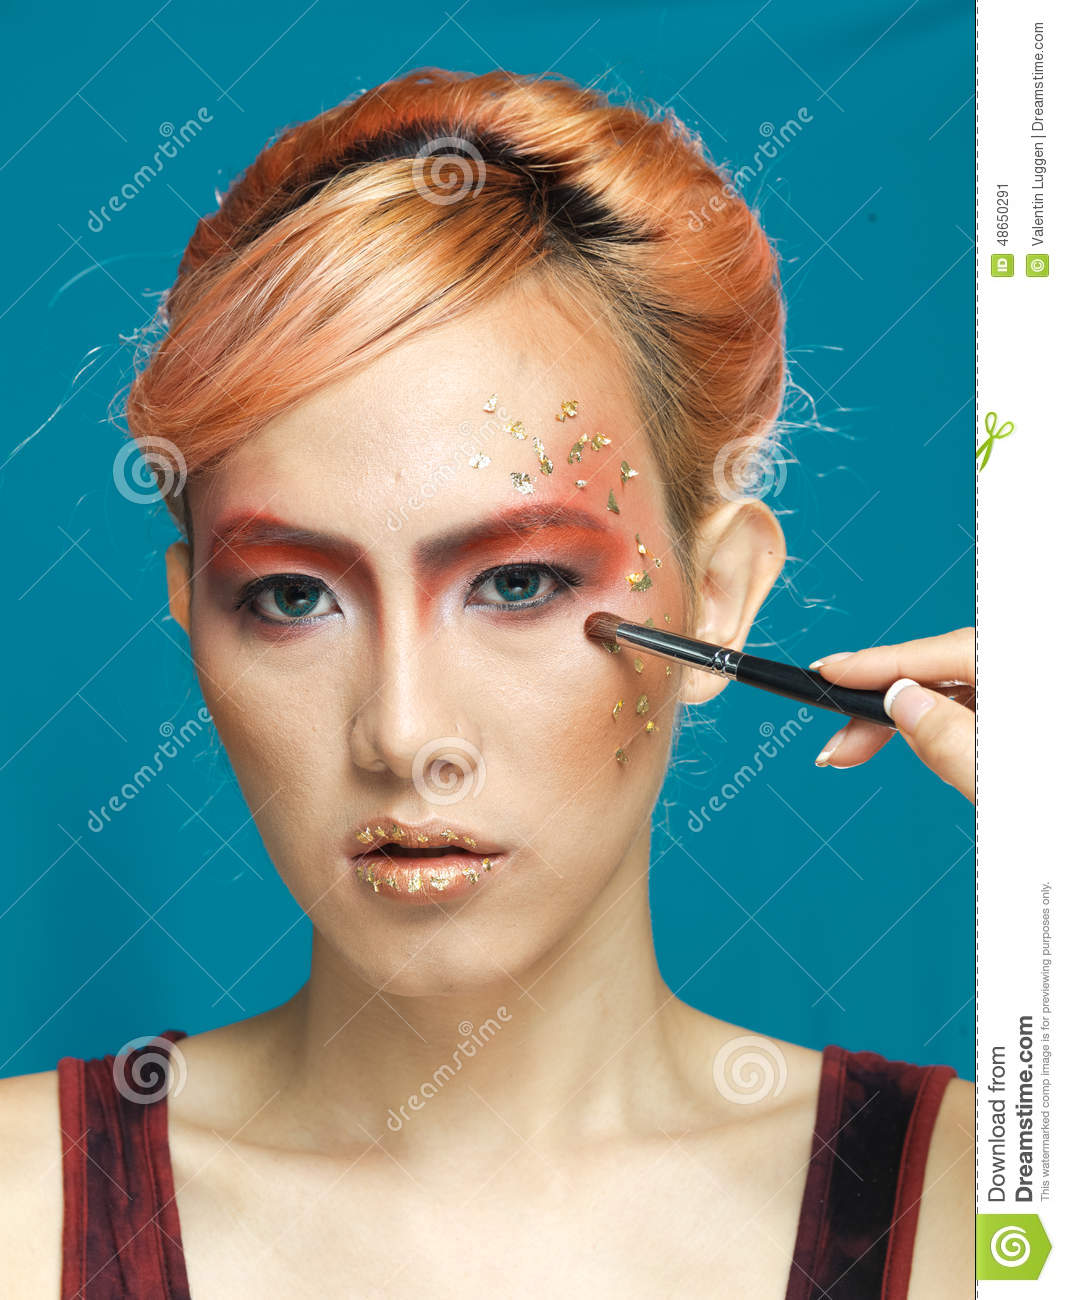 Transsexual Model Styling Stock Photo Image 48650291